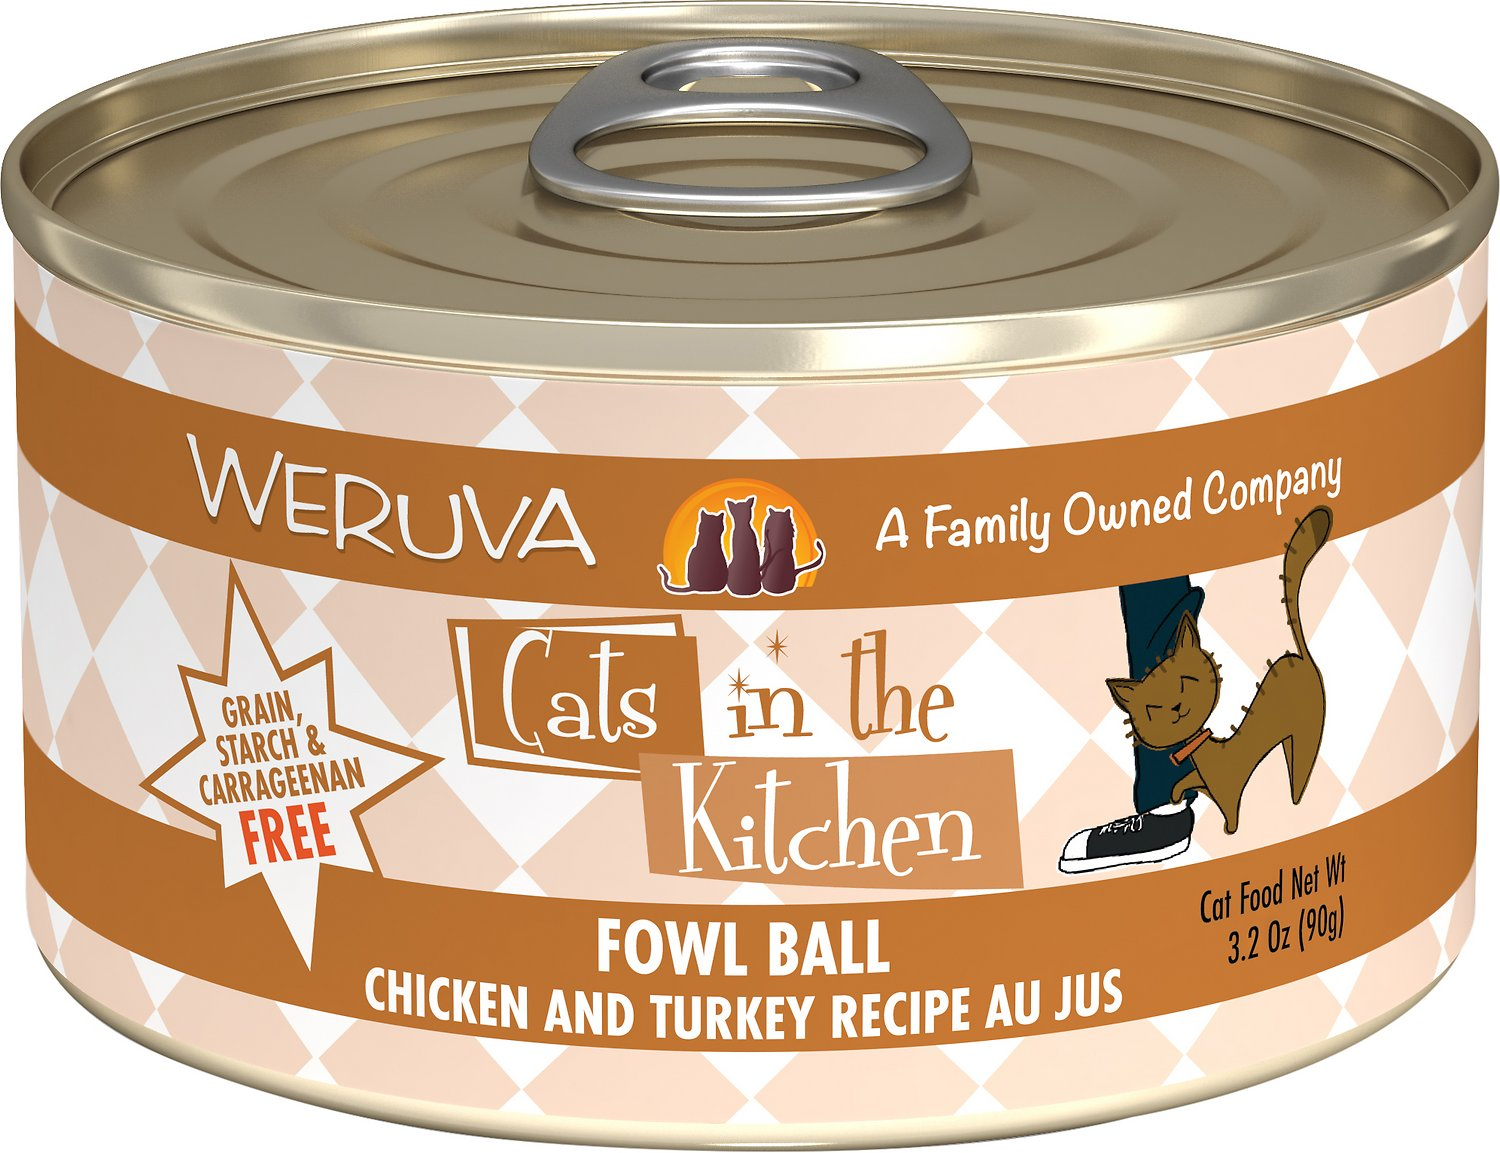 Weruva Cats in the Kitchen Fowl Ball Chicken & Turkey Au Jus Grain-Free Wet Cat Food, 3.2-oz